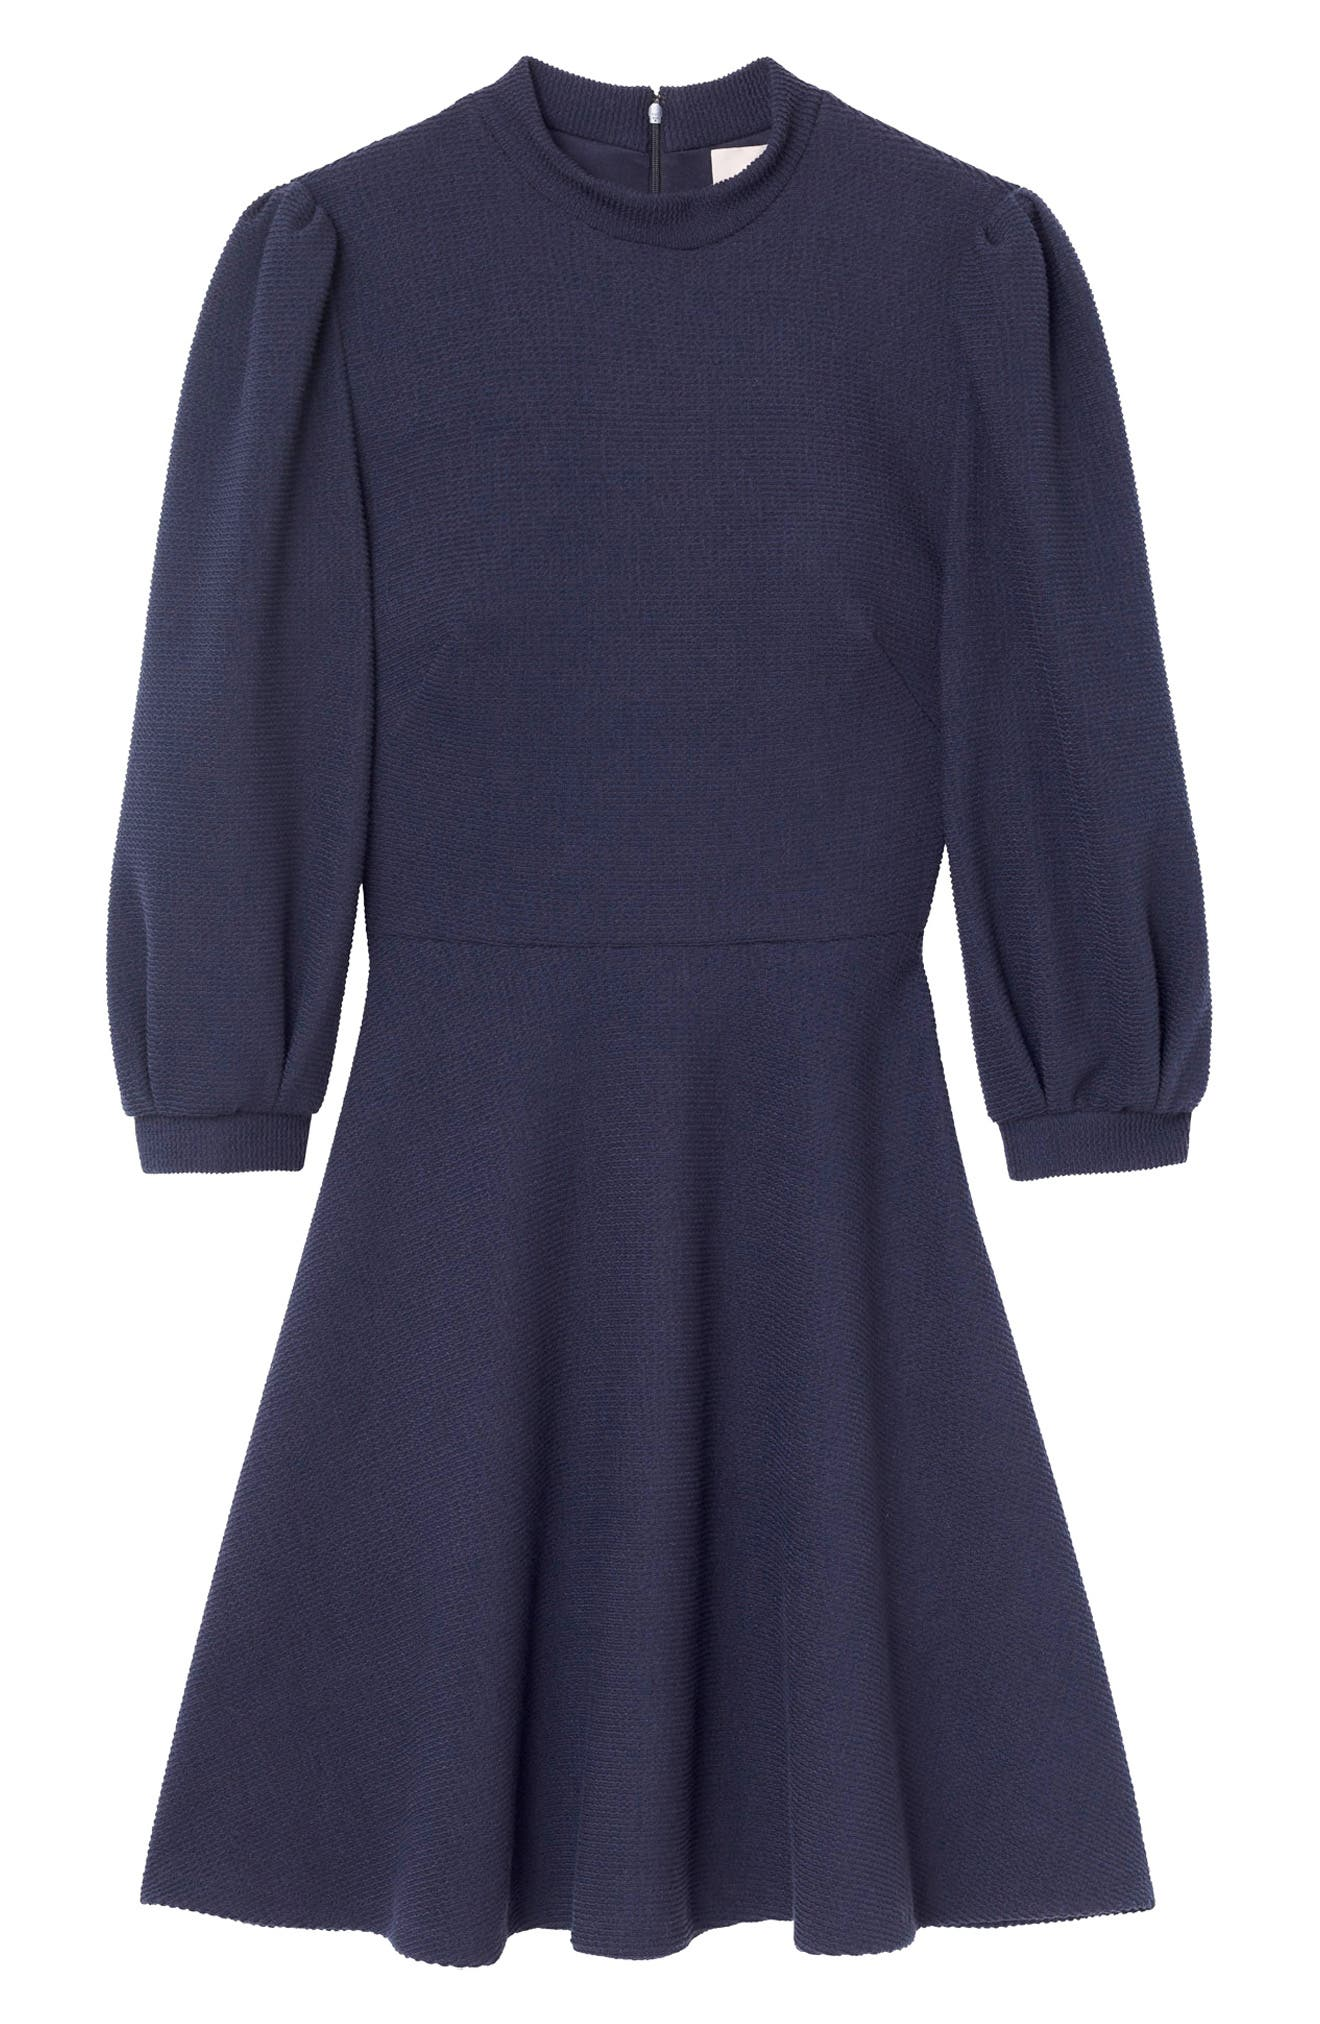 Maggie Texture Knit Fit & Flare Dress,                             Alternate thumbnail 4, color,                             NAVY